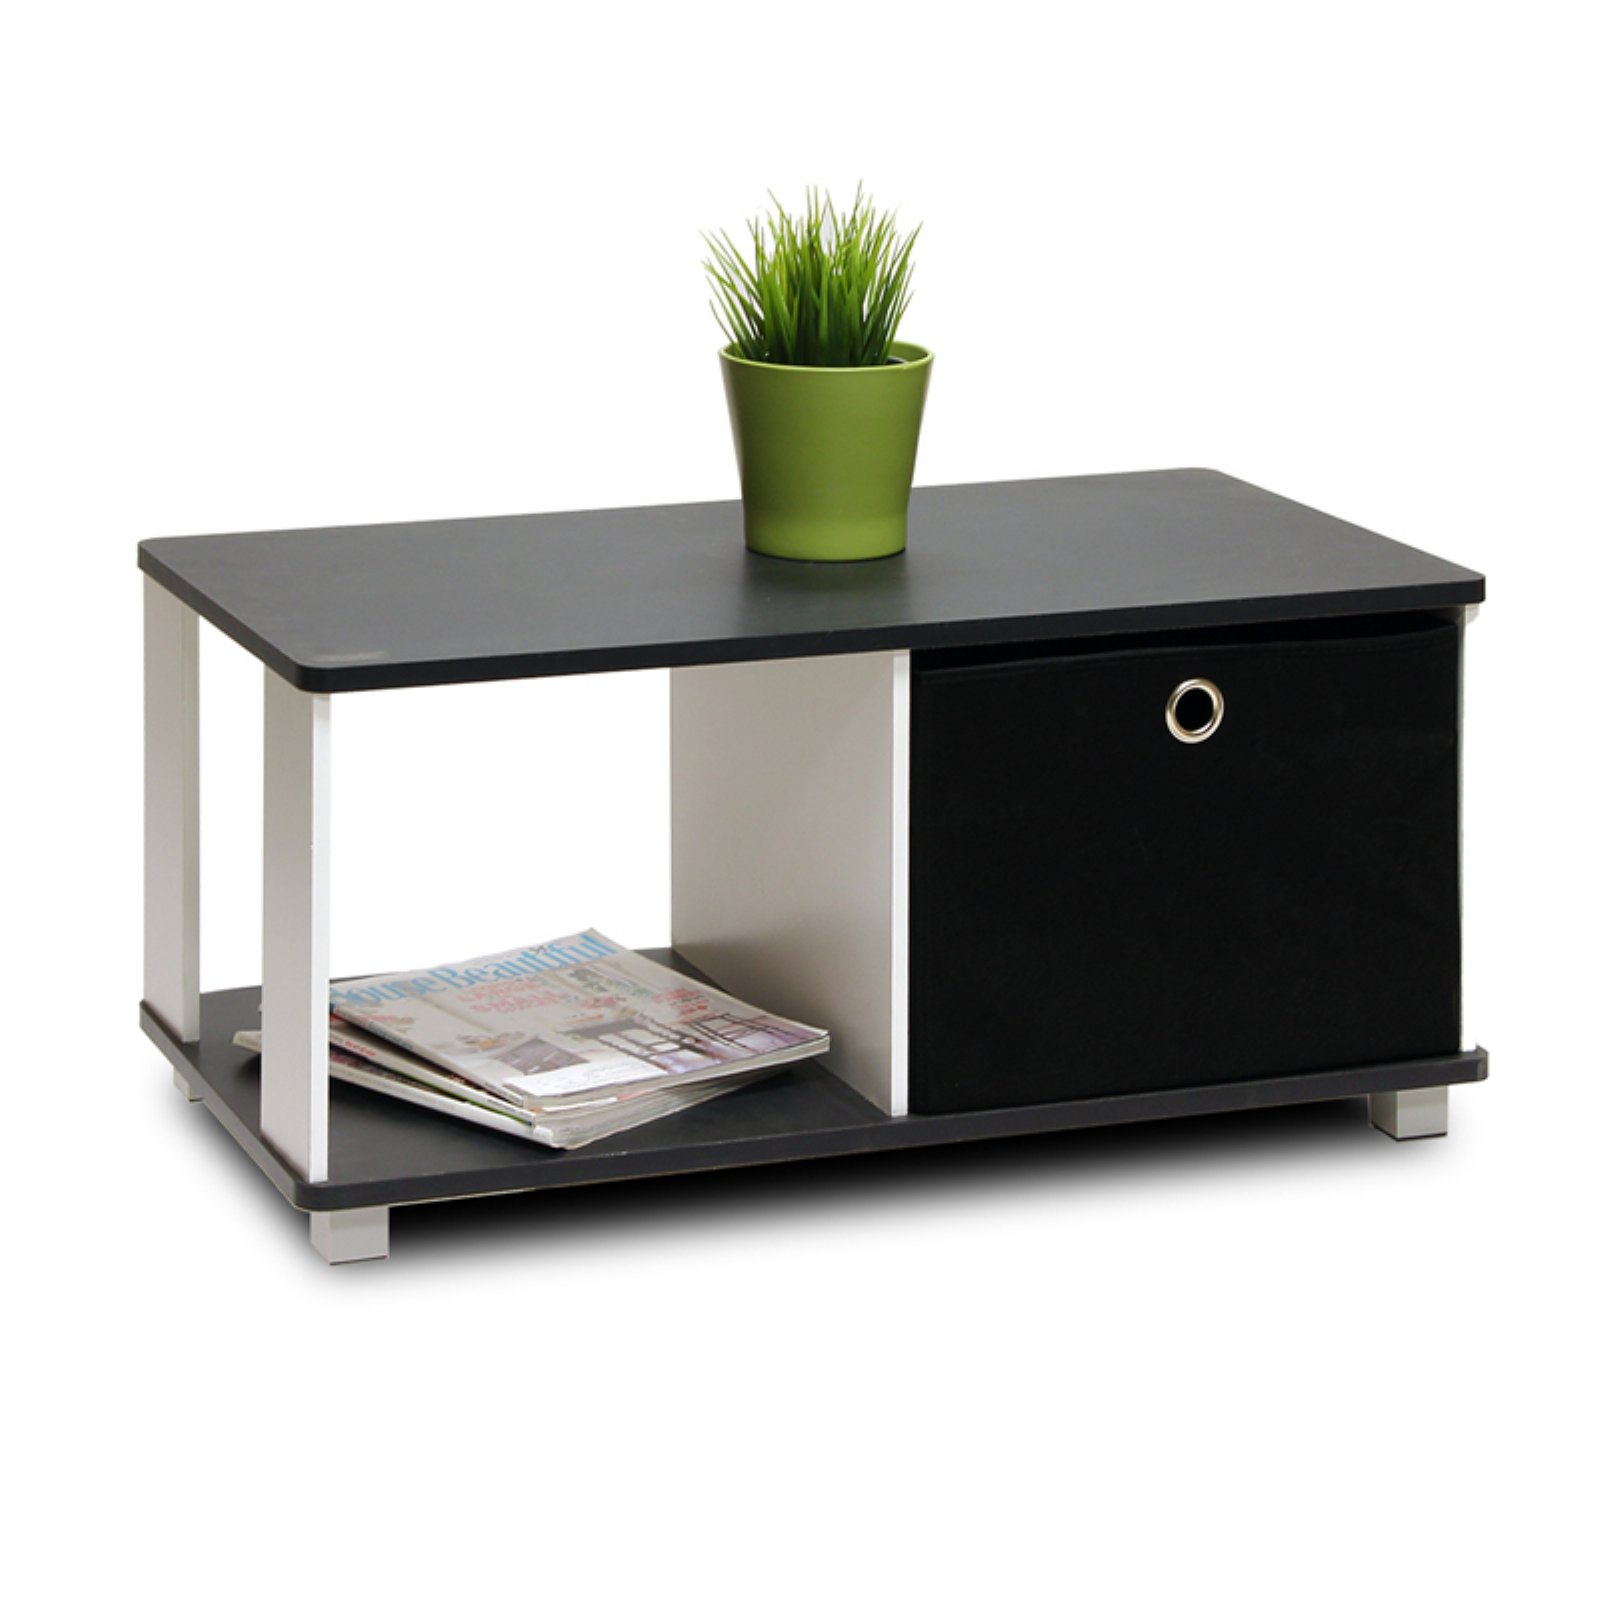 Furinno 99954BK BK Coffee Table with Bin Drawer by Furinno